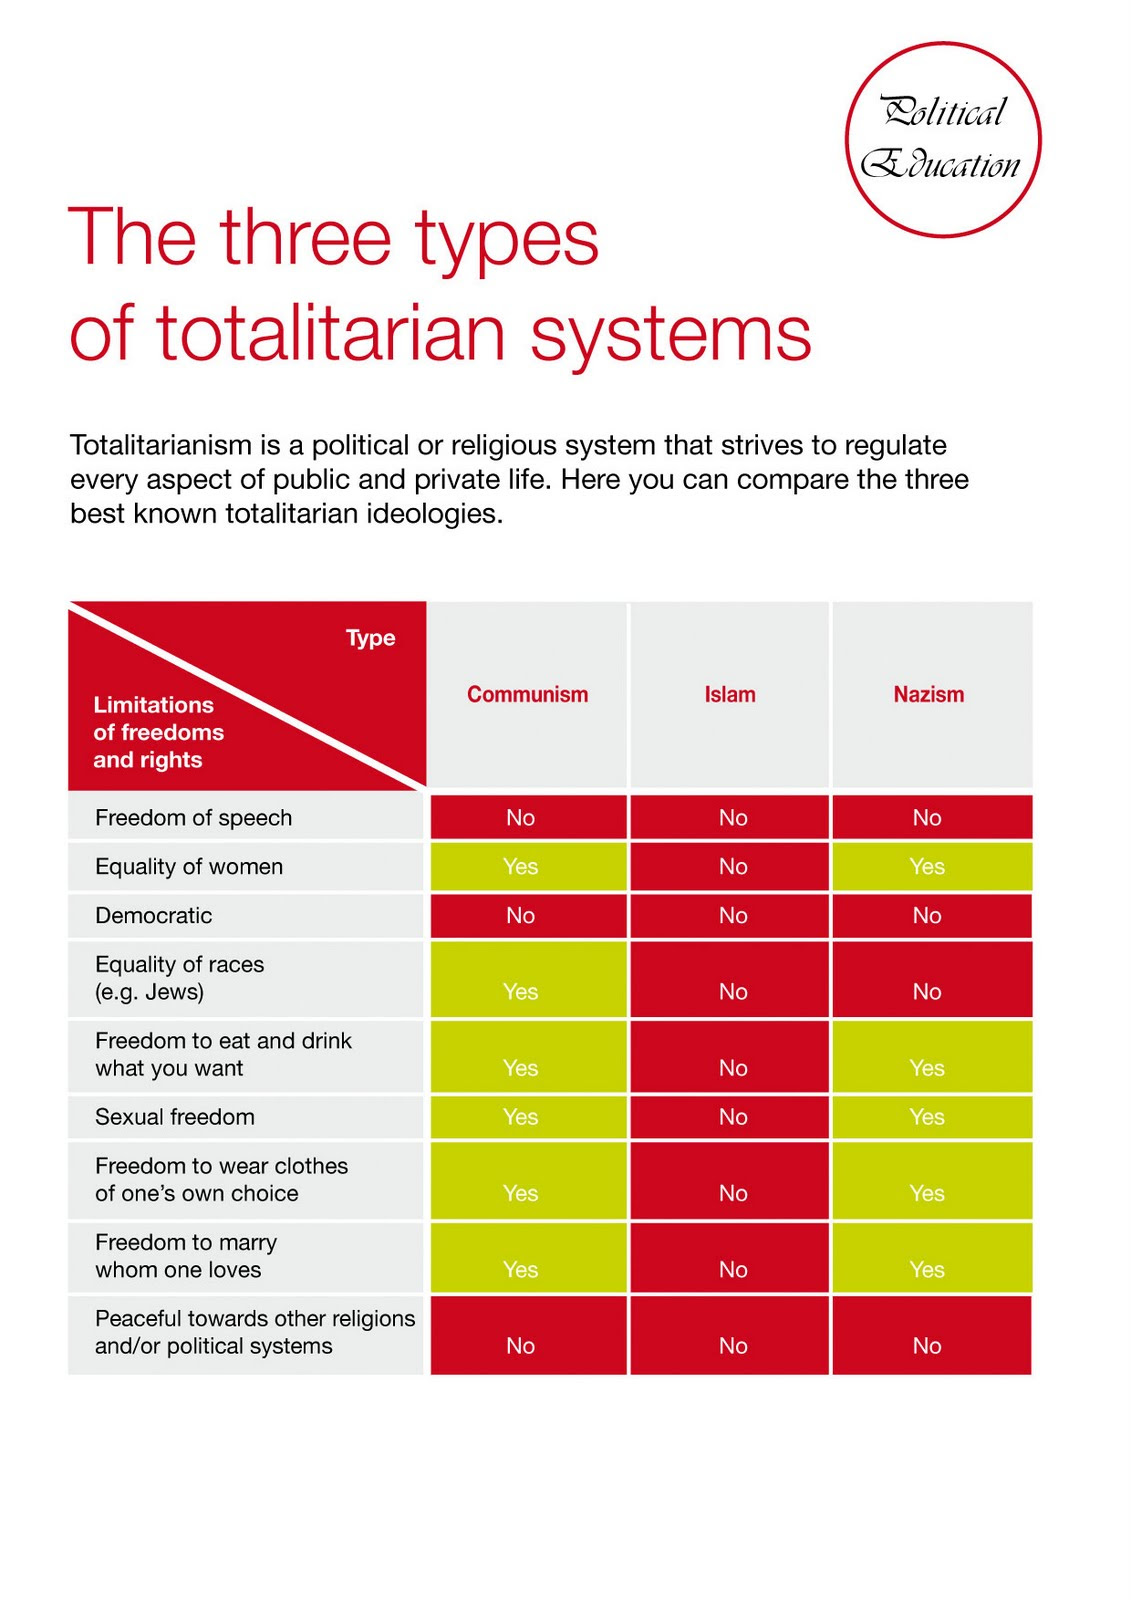 http://pumabydesign001.files.wordpress.com/2011/07/totalitarian-systems.jpg